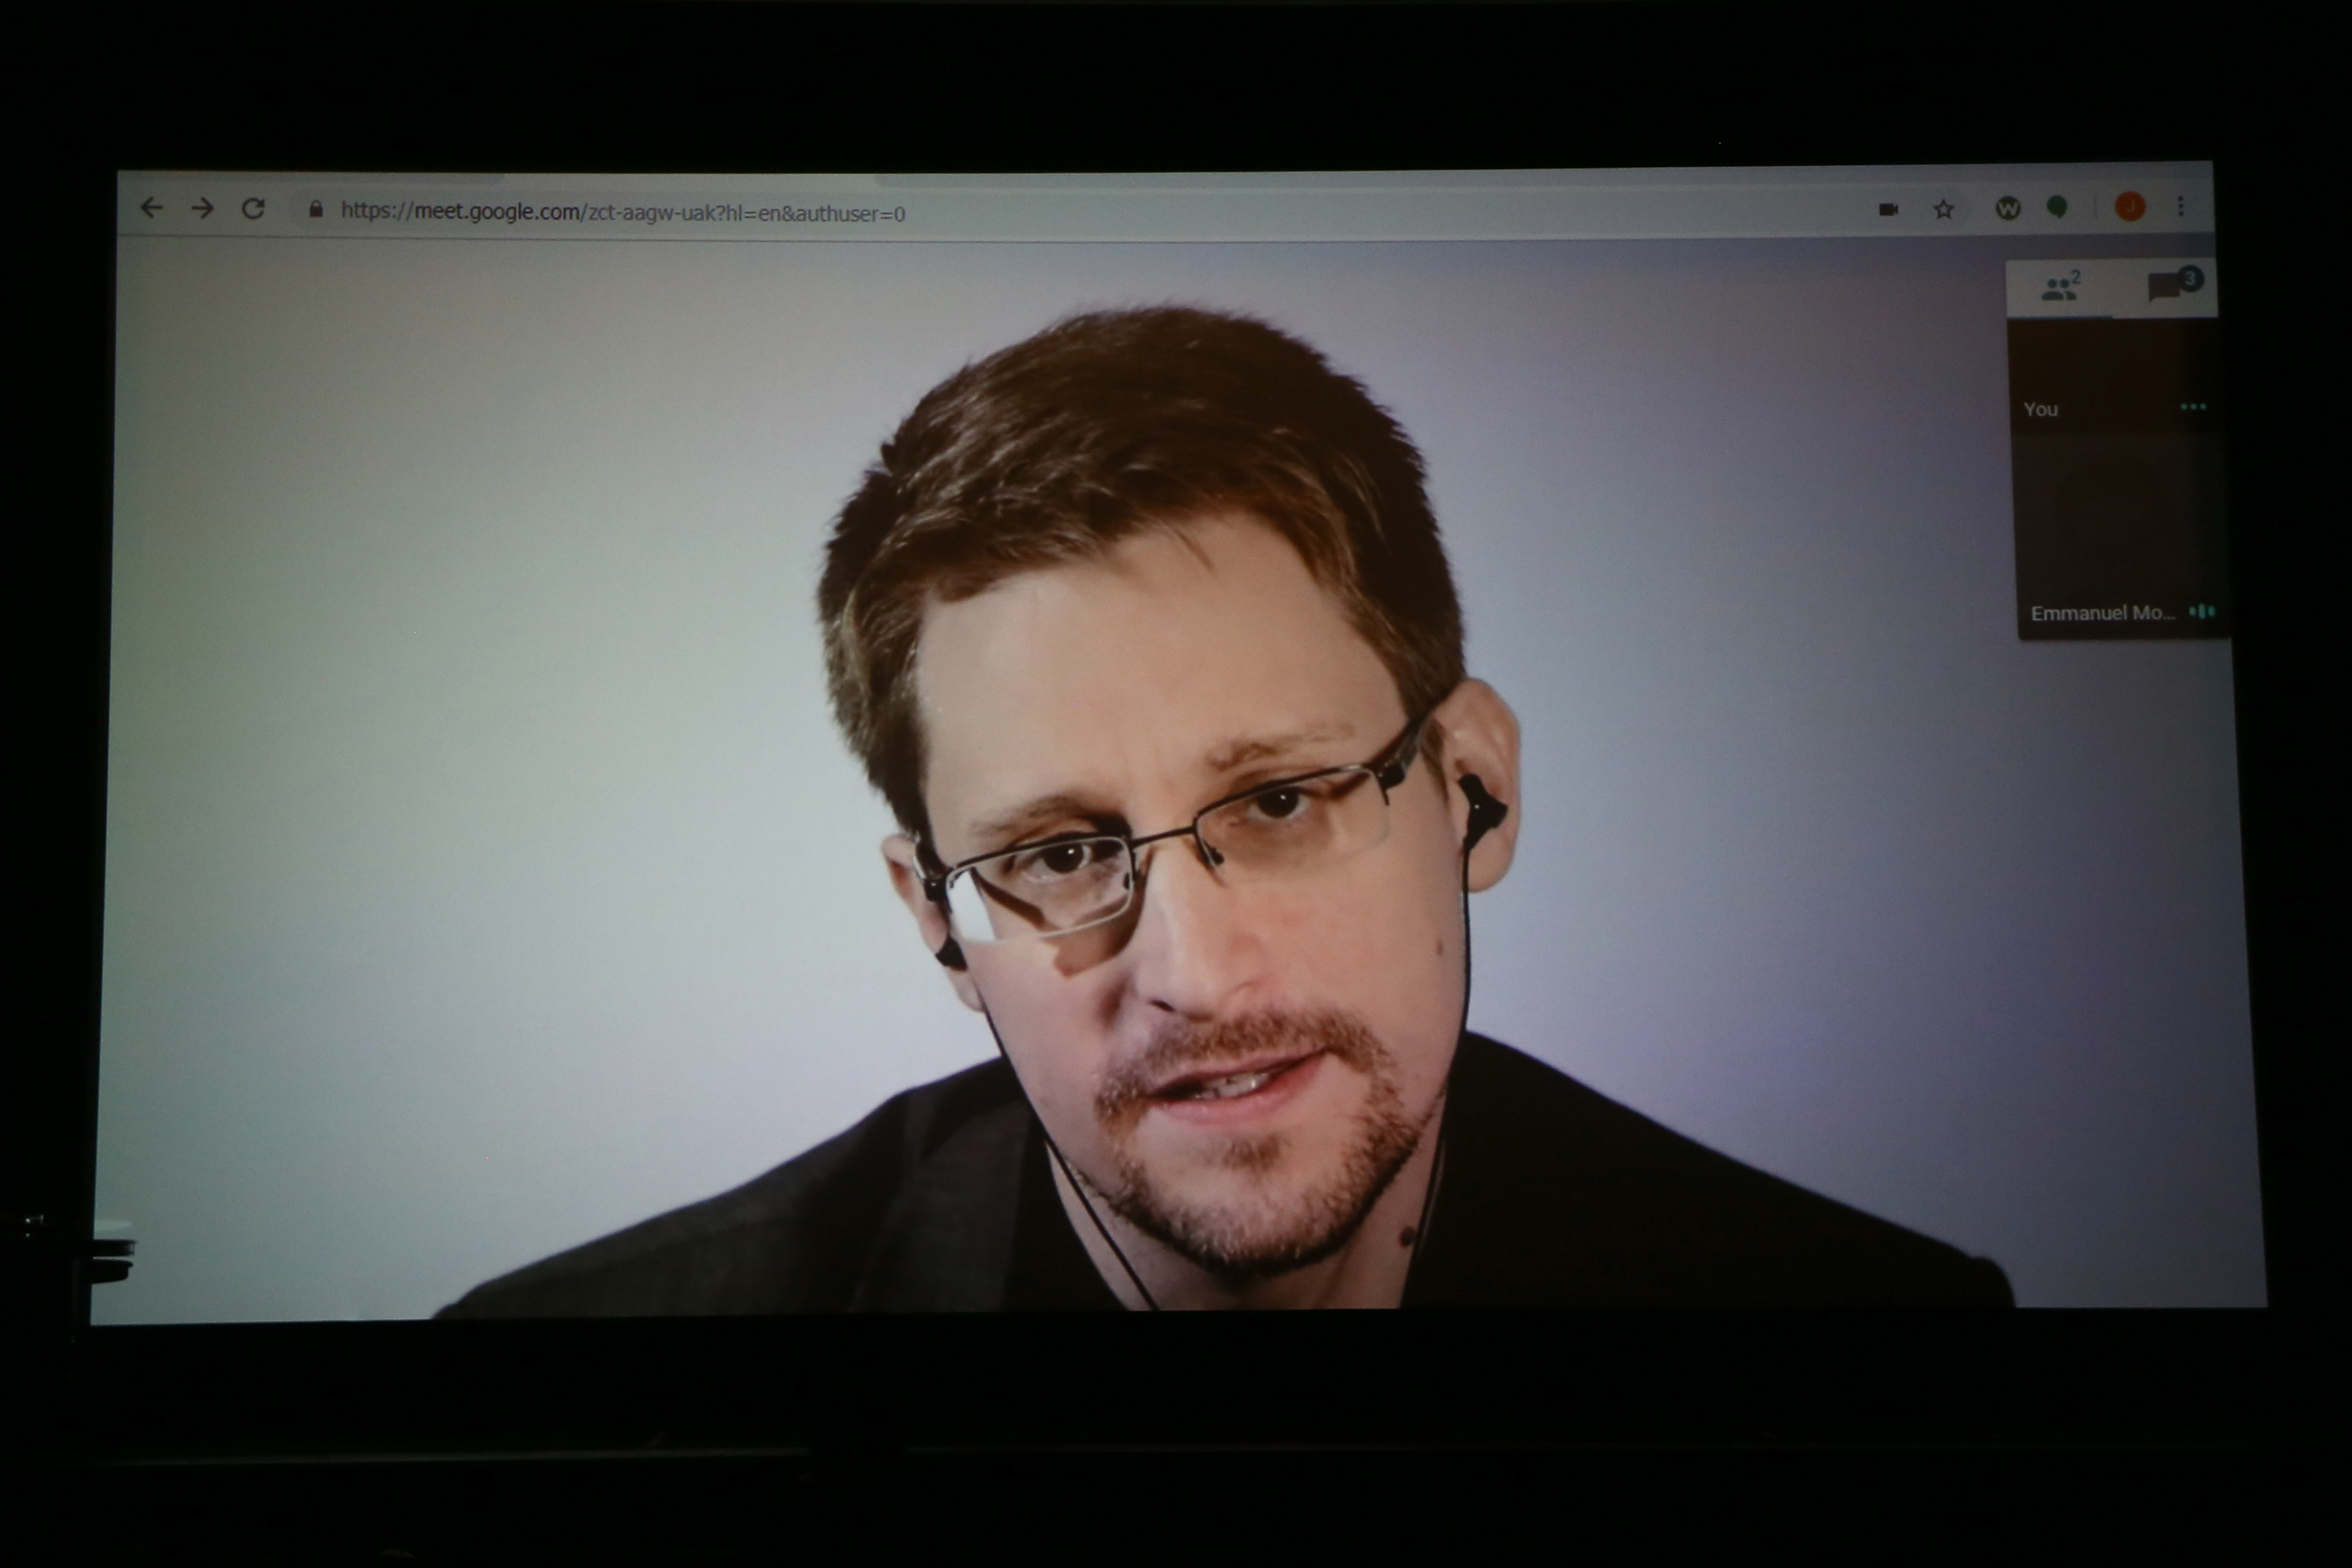 SAN FRANCISCO, CA - OCTOBER 14: Edward Snowden speaks remotely WIRED25 Festival: WIRED Celebrates 25th Anniversary ? Day 2 on October 14, 2018 in San Francisco, California. (Phillip Faraone/Getty Images for WIRED25 )